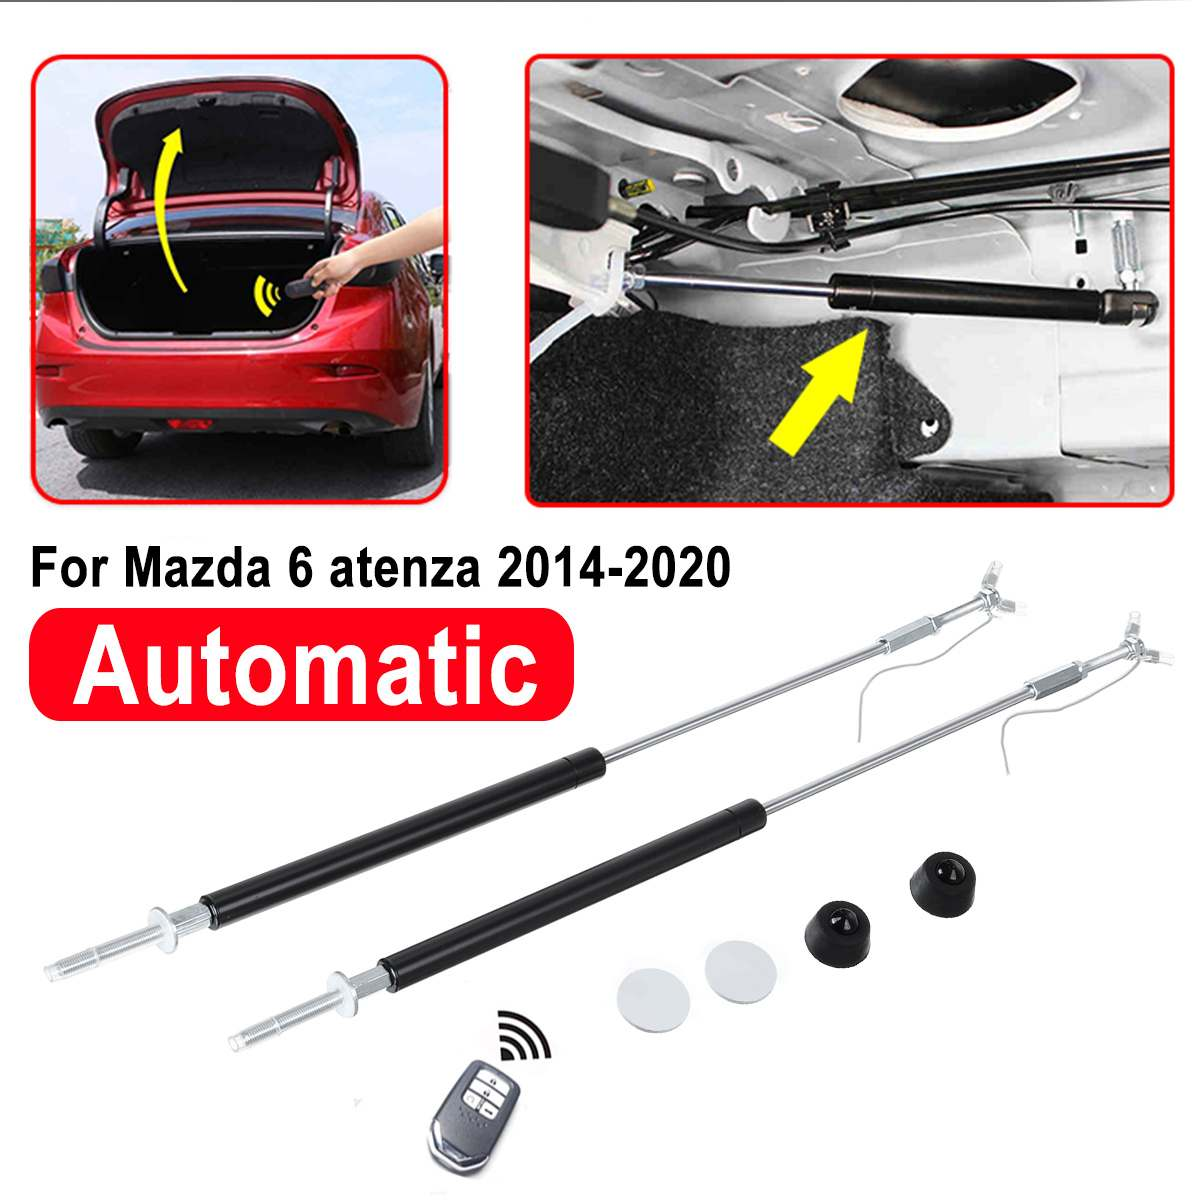 1 Pair Refit Rear Tailgate Back Trunk Boot Gas Struts Door Spring Shock Lifting Bracket For Mazda 6 Atenza 2014-2020 Automatic(China)